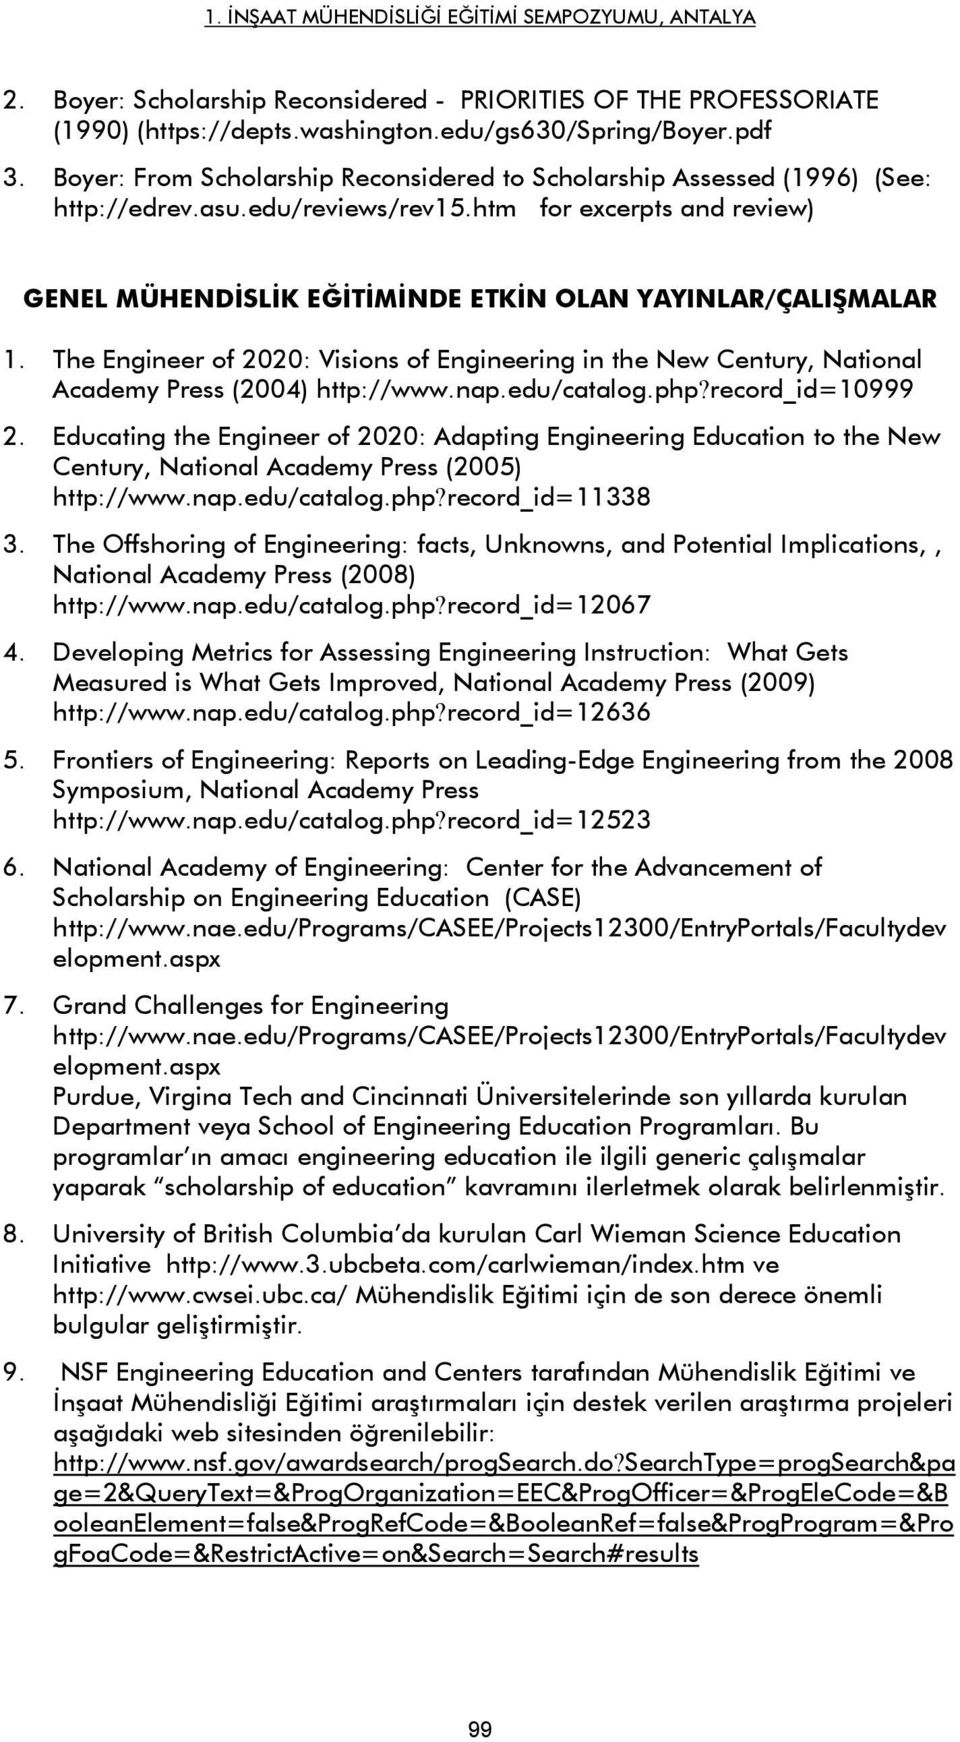 The Engineer of 2020: Visions of Engineering in the New Century, National Academy Press (2004) http://www.nap.edu/catalog.php?record_id=10999 2.